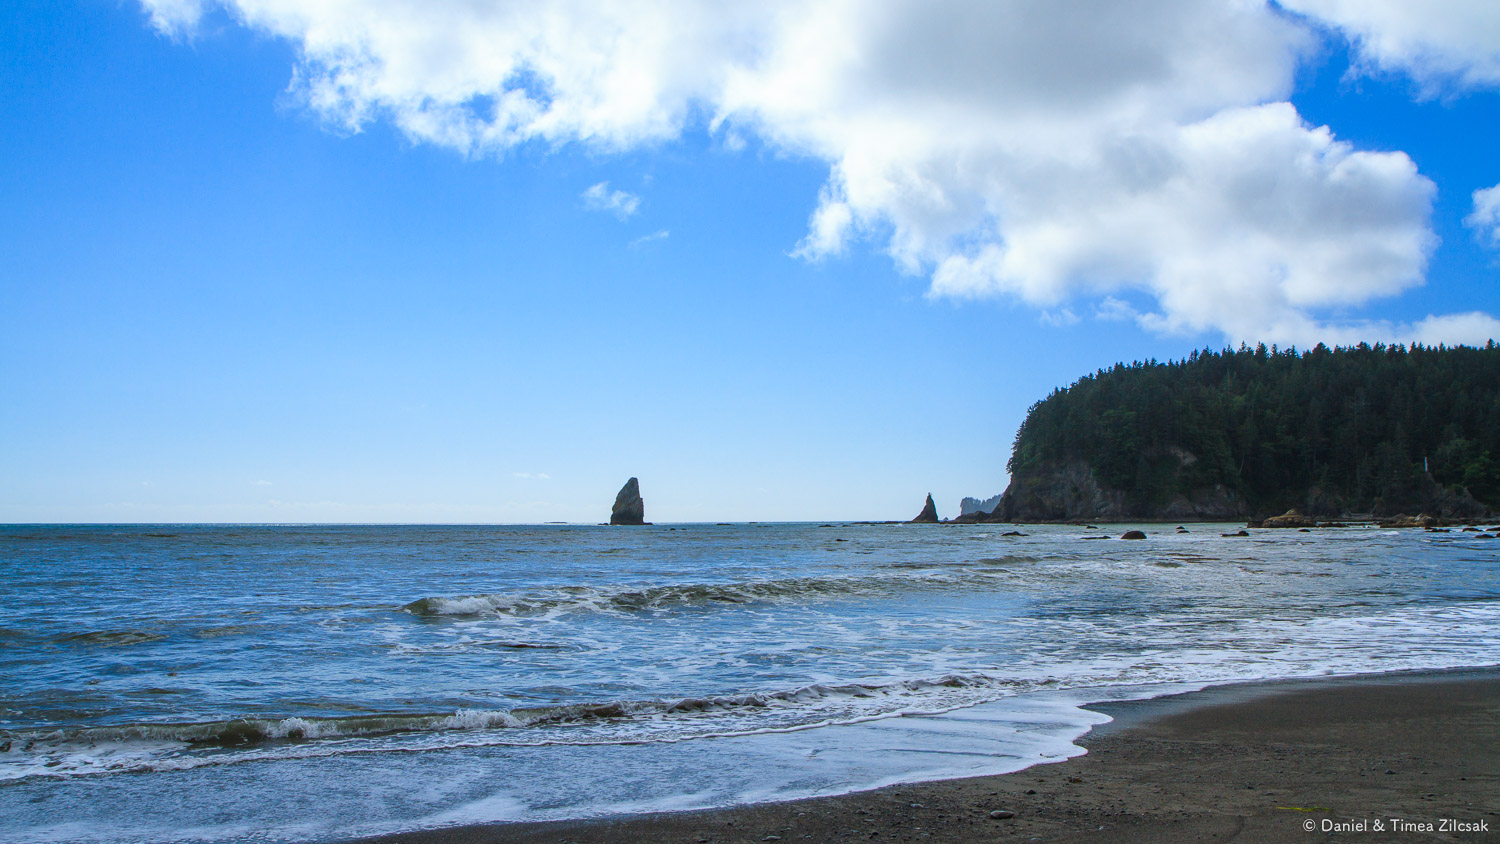 Looking back towards Taylor Point from Scott's Bluff, South Coast Wilderness Trail, WA